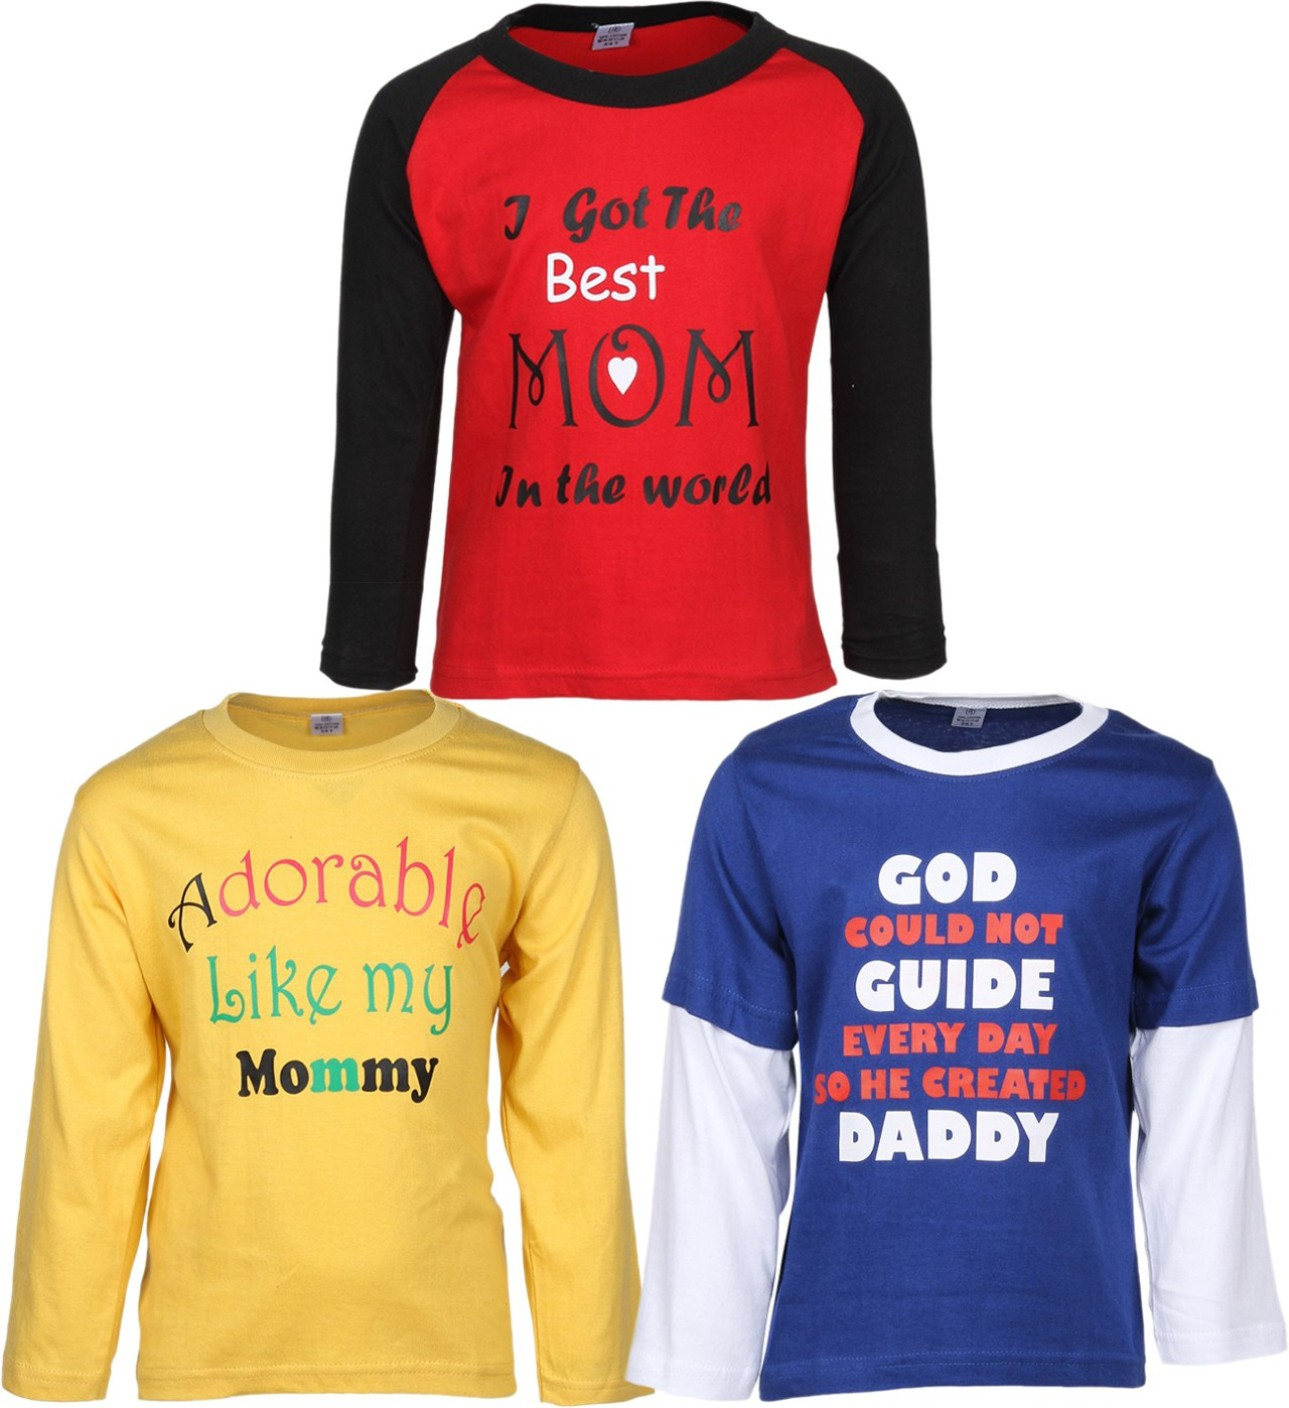 Online shopping india buy mobiles electronics for T shirt offer online shopping